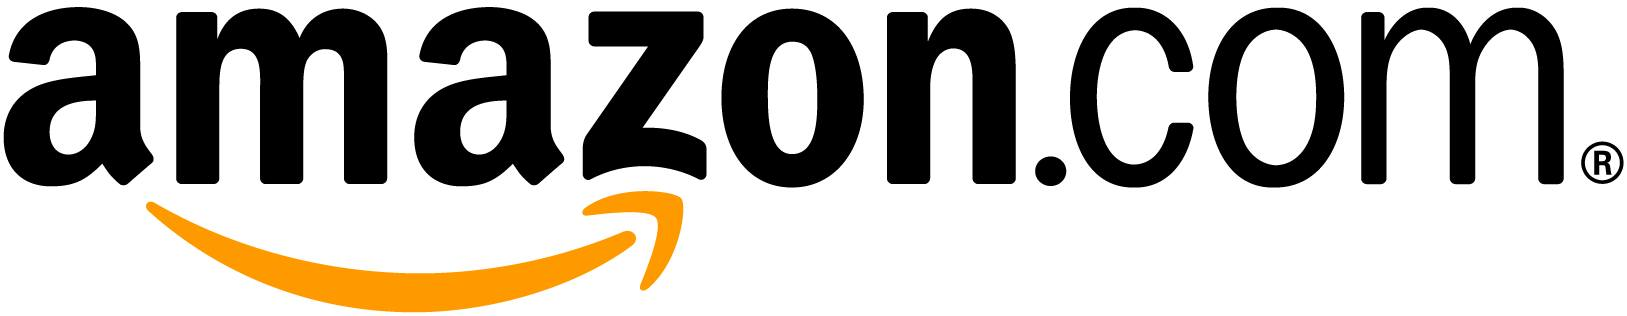 Amazon-com-logo-online-store-sales-deals-12